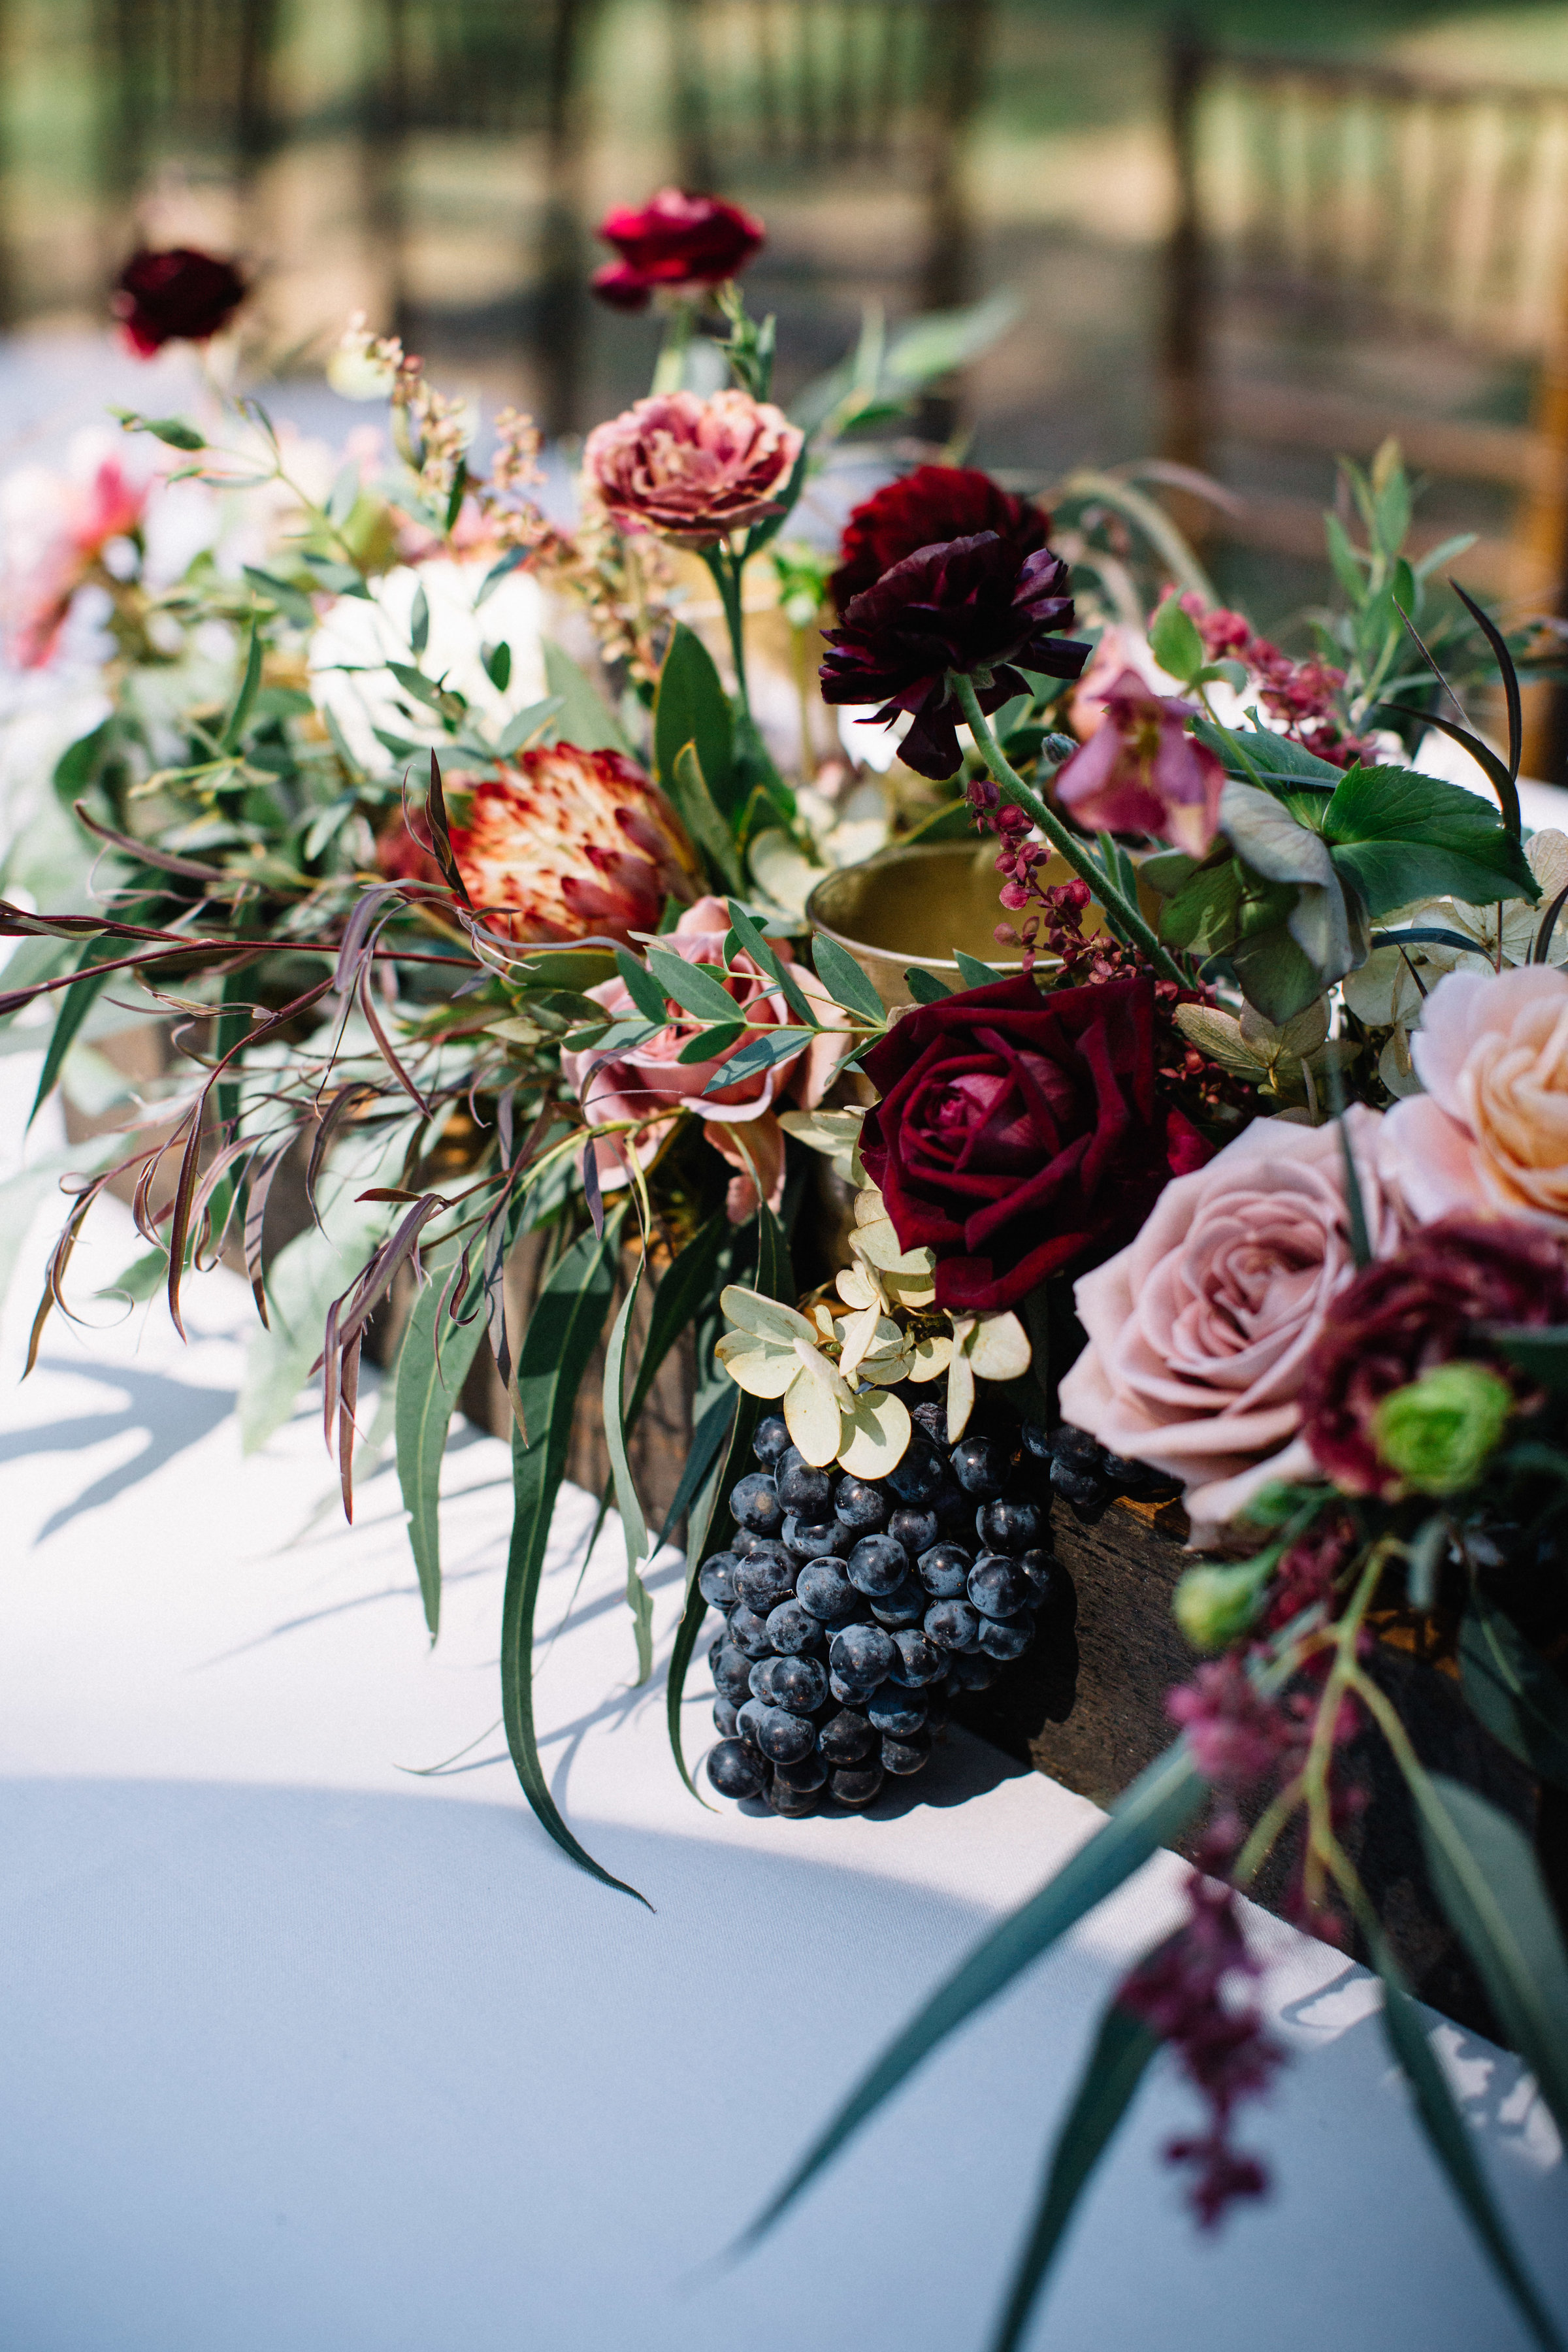 Lush centerpiece by Venn Floral with black grapes, protea, garden roses, and hellebores for an outdoor coastal wedding on Tomales Bay at Straus Home Ranch photographed by Lucille Lawrence.